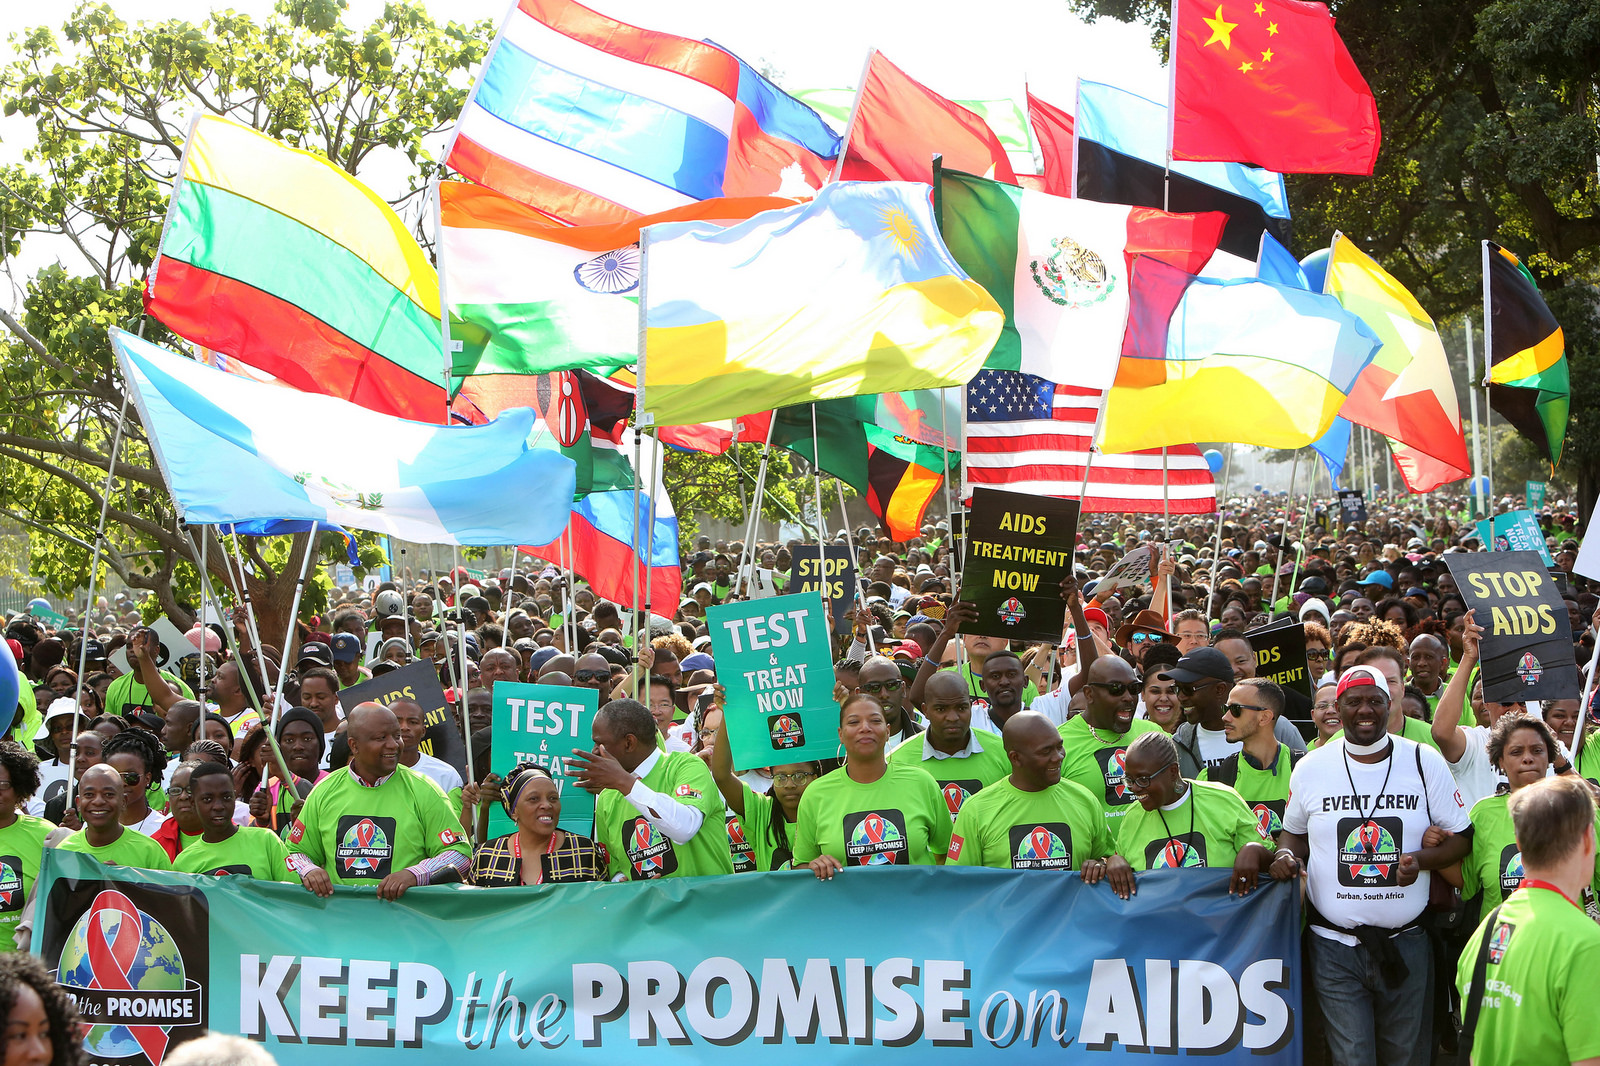 holding banner that says keep the promise on AIDS